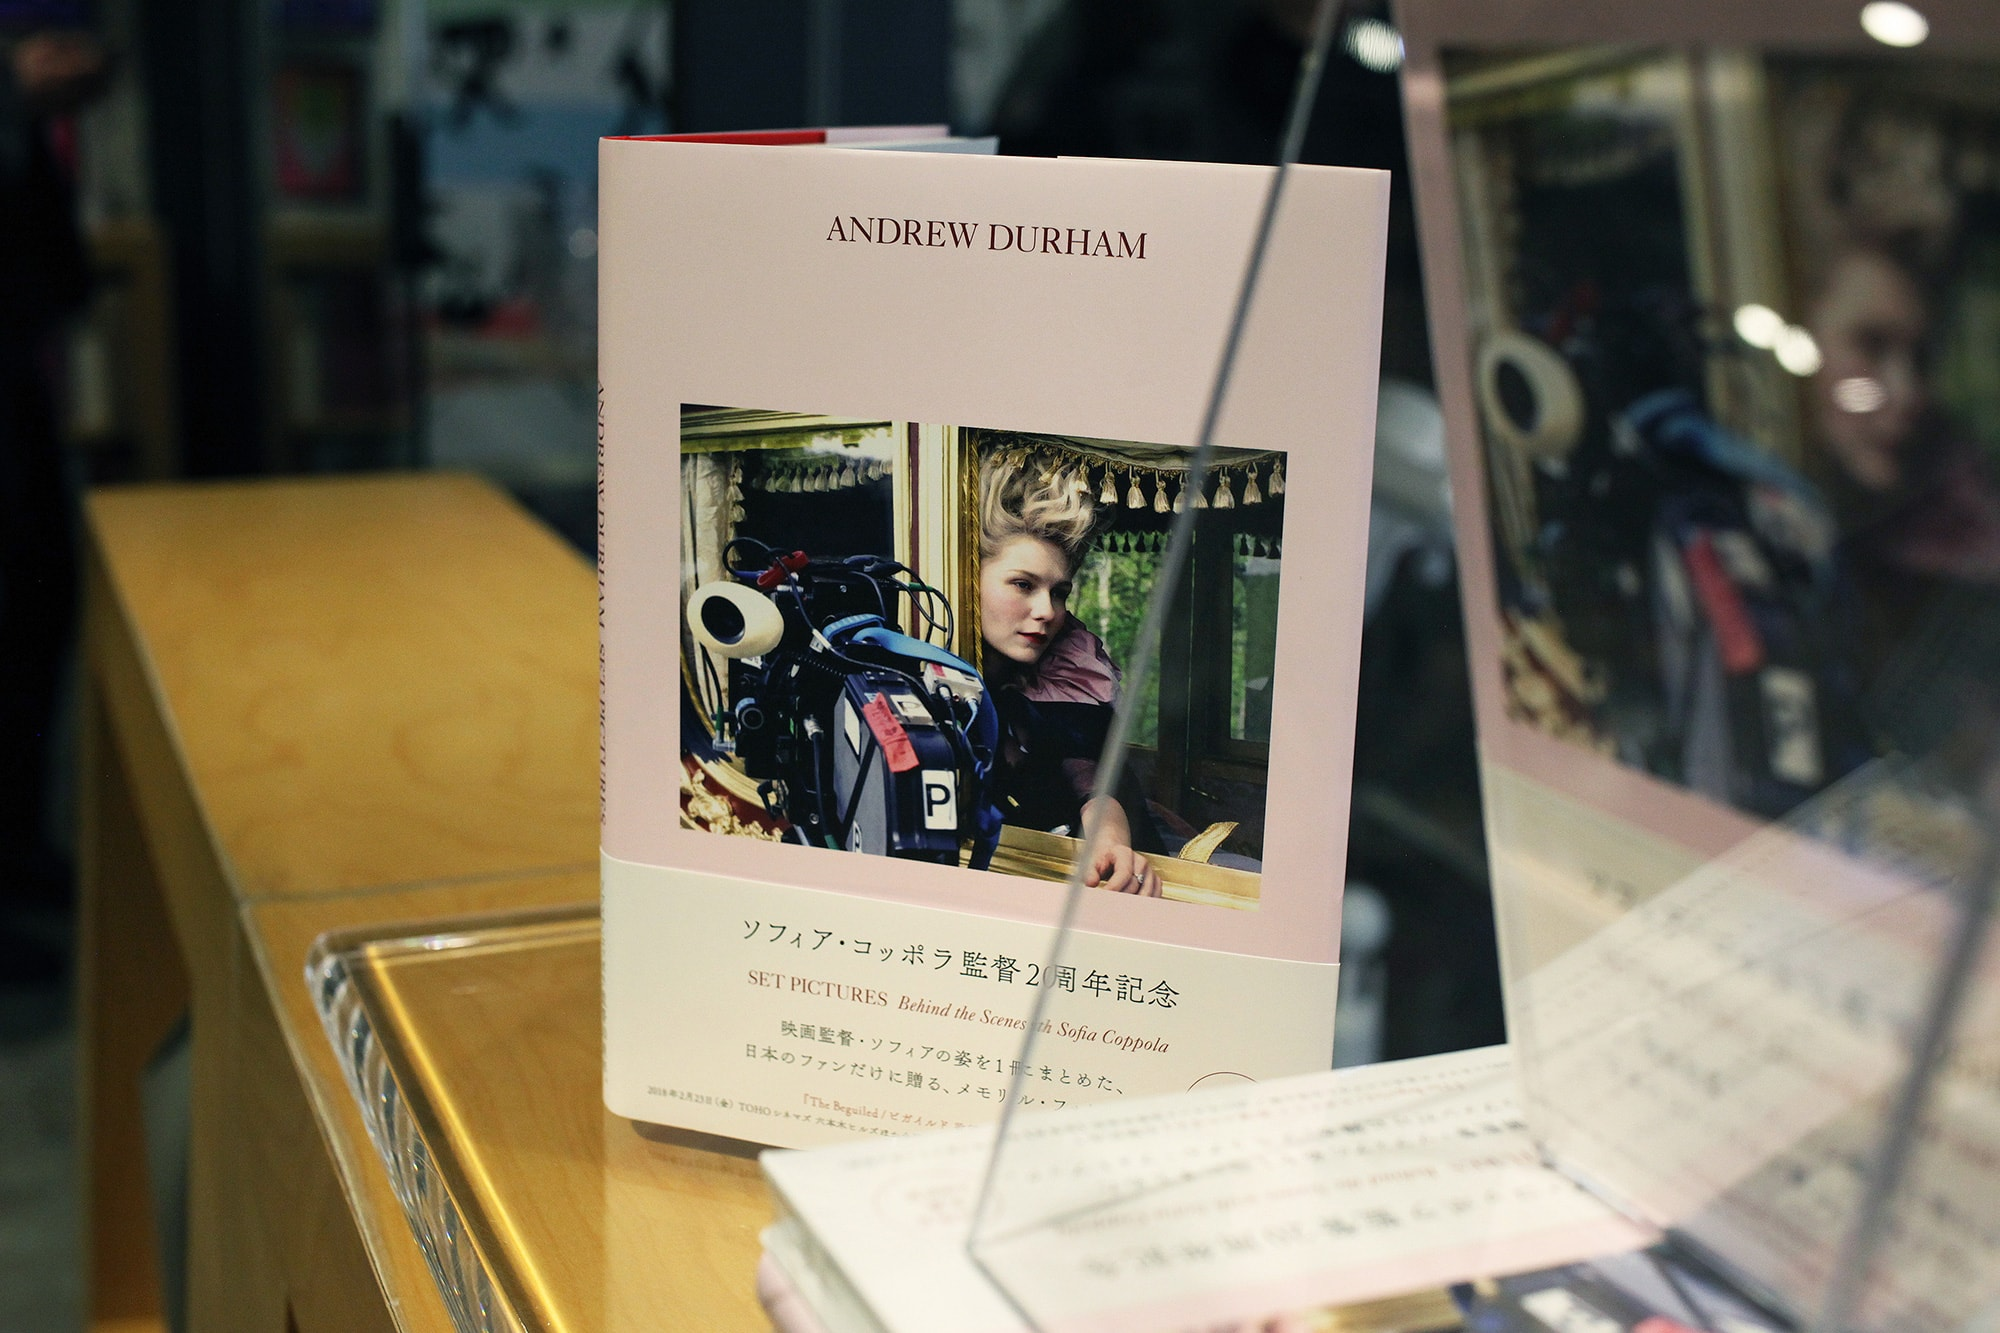 『Andrew Durham SET PICTURES Behind the Scenes with Sofia Coppola』